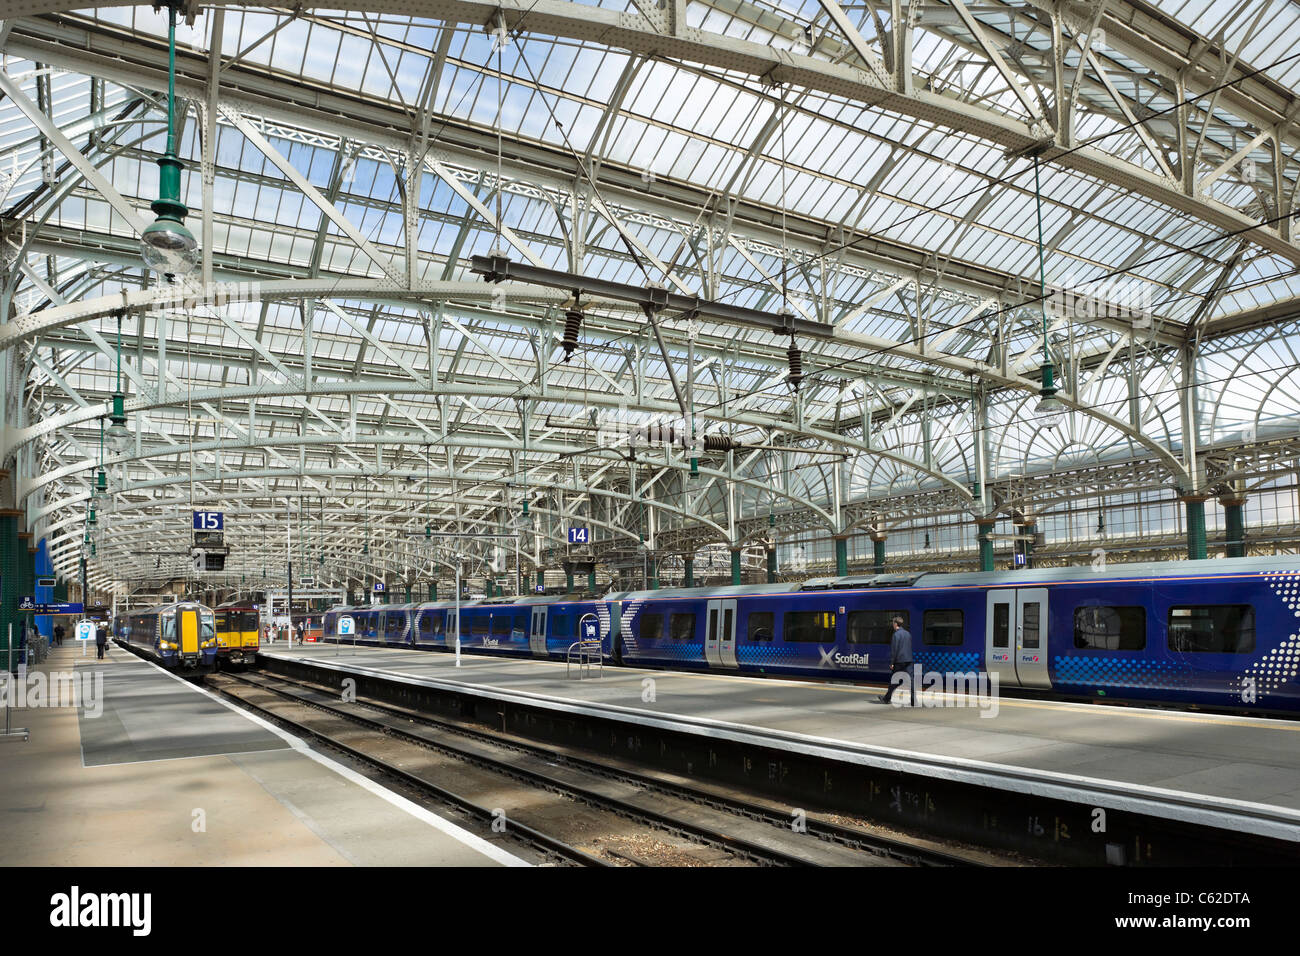 Glasgow Central Station, Glasgow, Scotland, UK - Stock Image